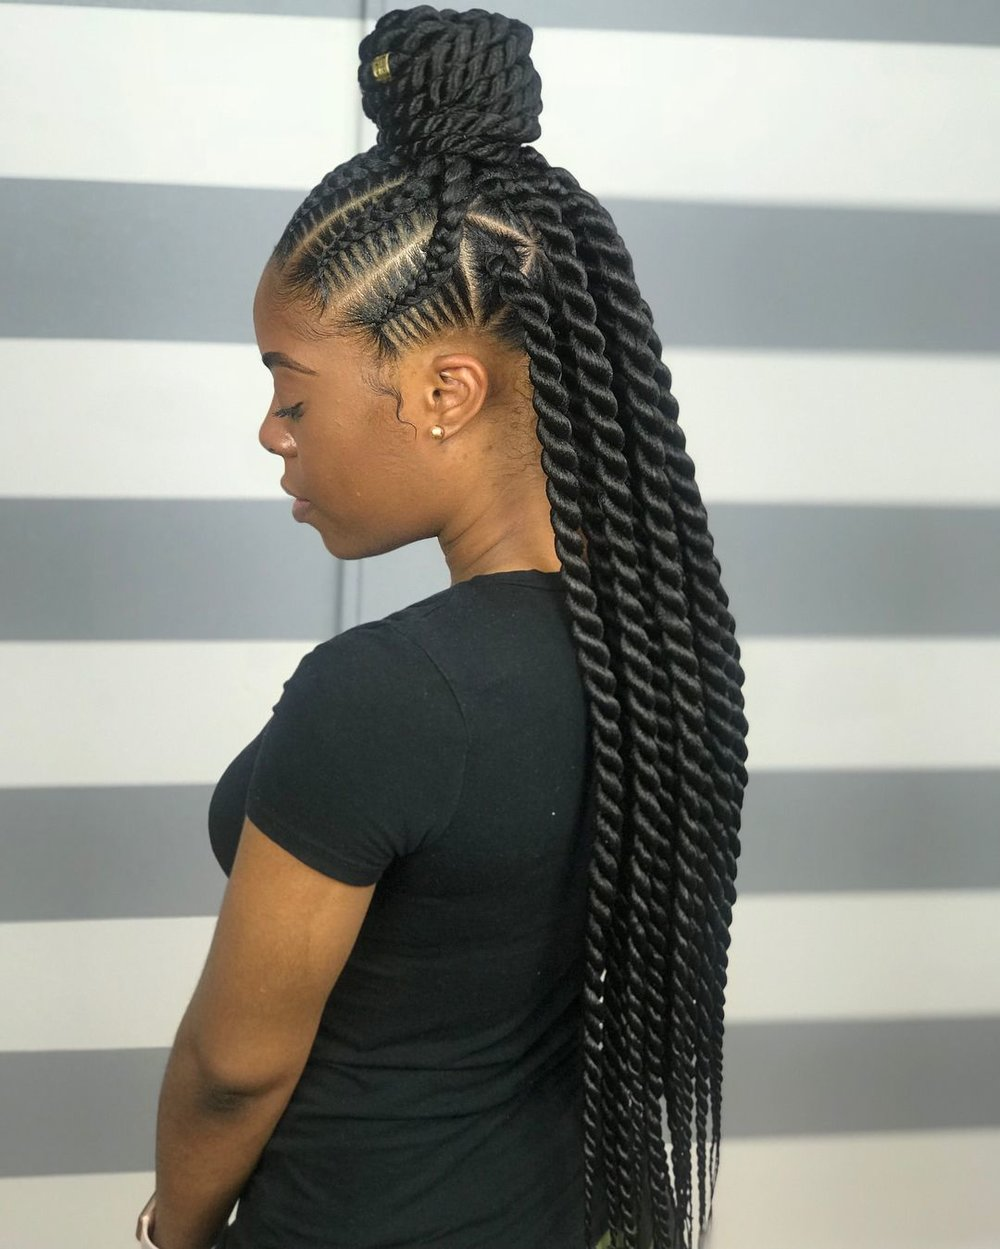 - Stitch Braids w/ Jumbo Senegalese TwistsPhoto Courtesy of Pinterest